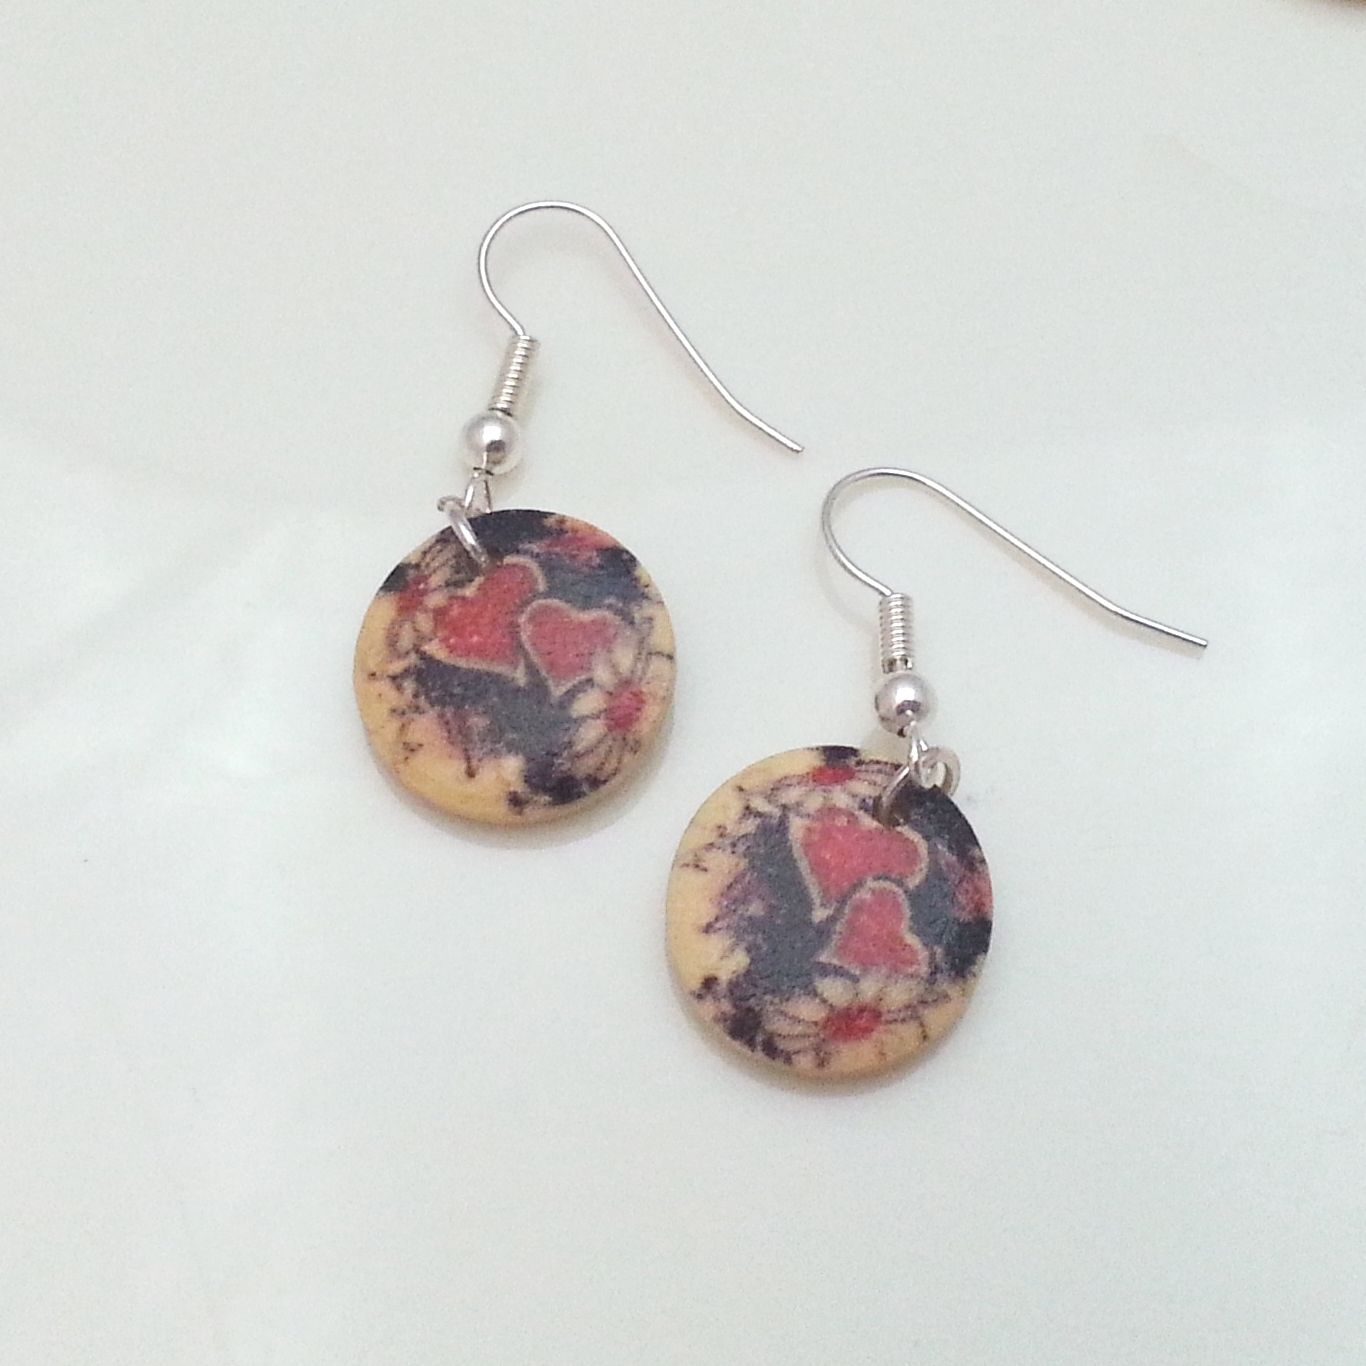 Light-Wooden-Jewellery-Earrings-Disc-Round-Wood-Red-Black-Hearts-Flowers-New-400739824173